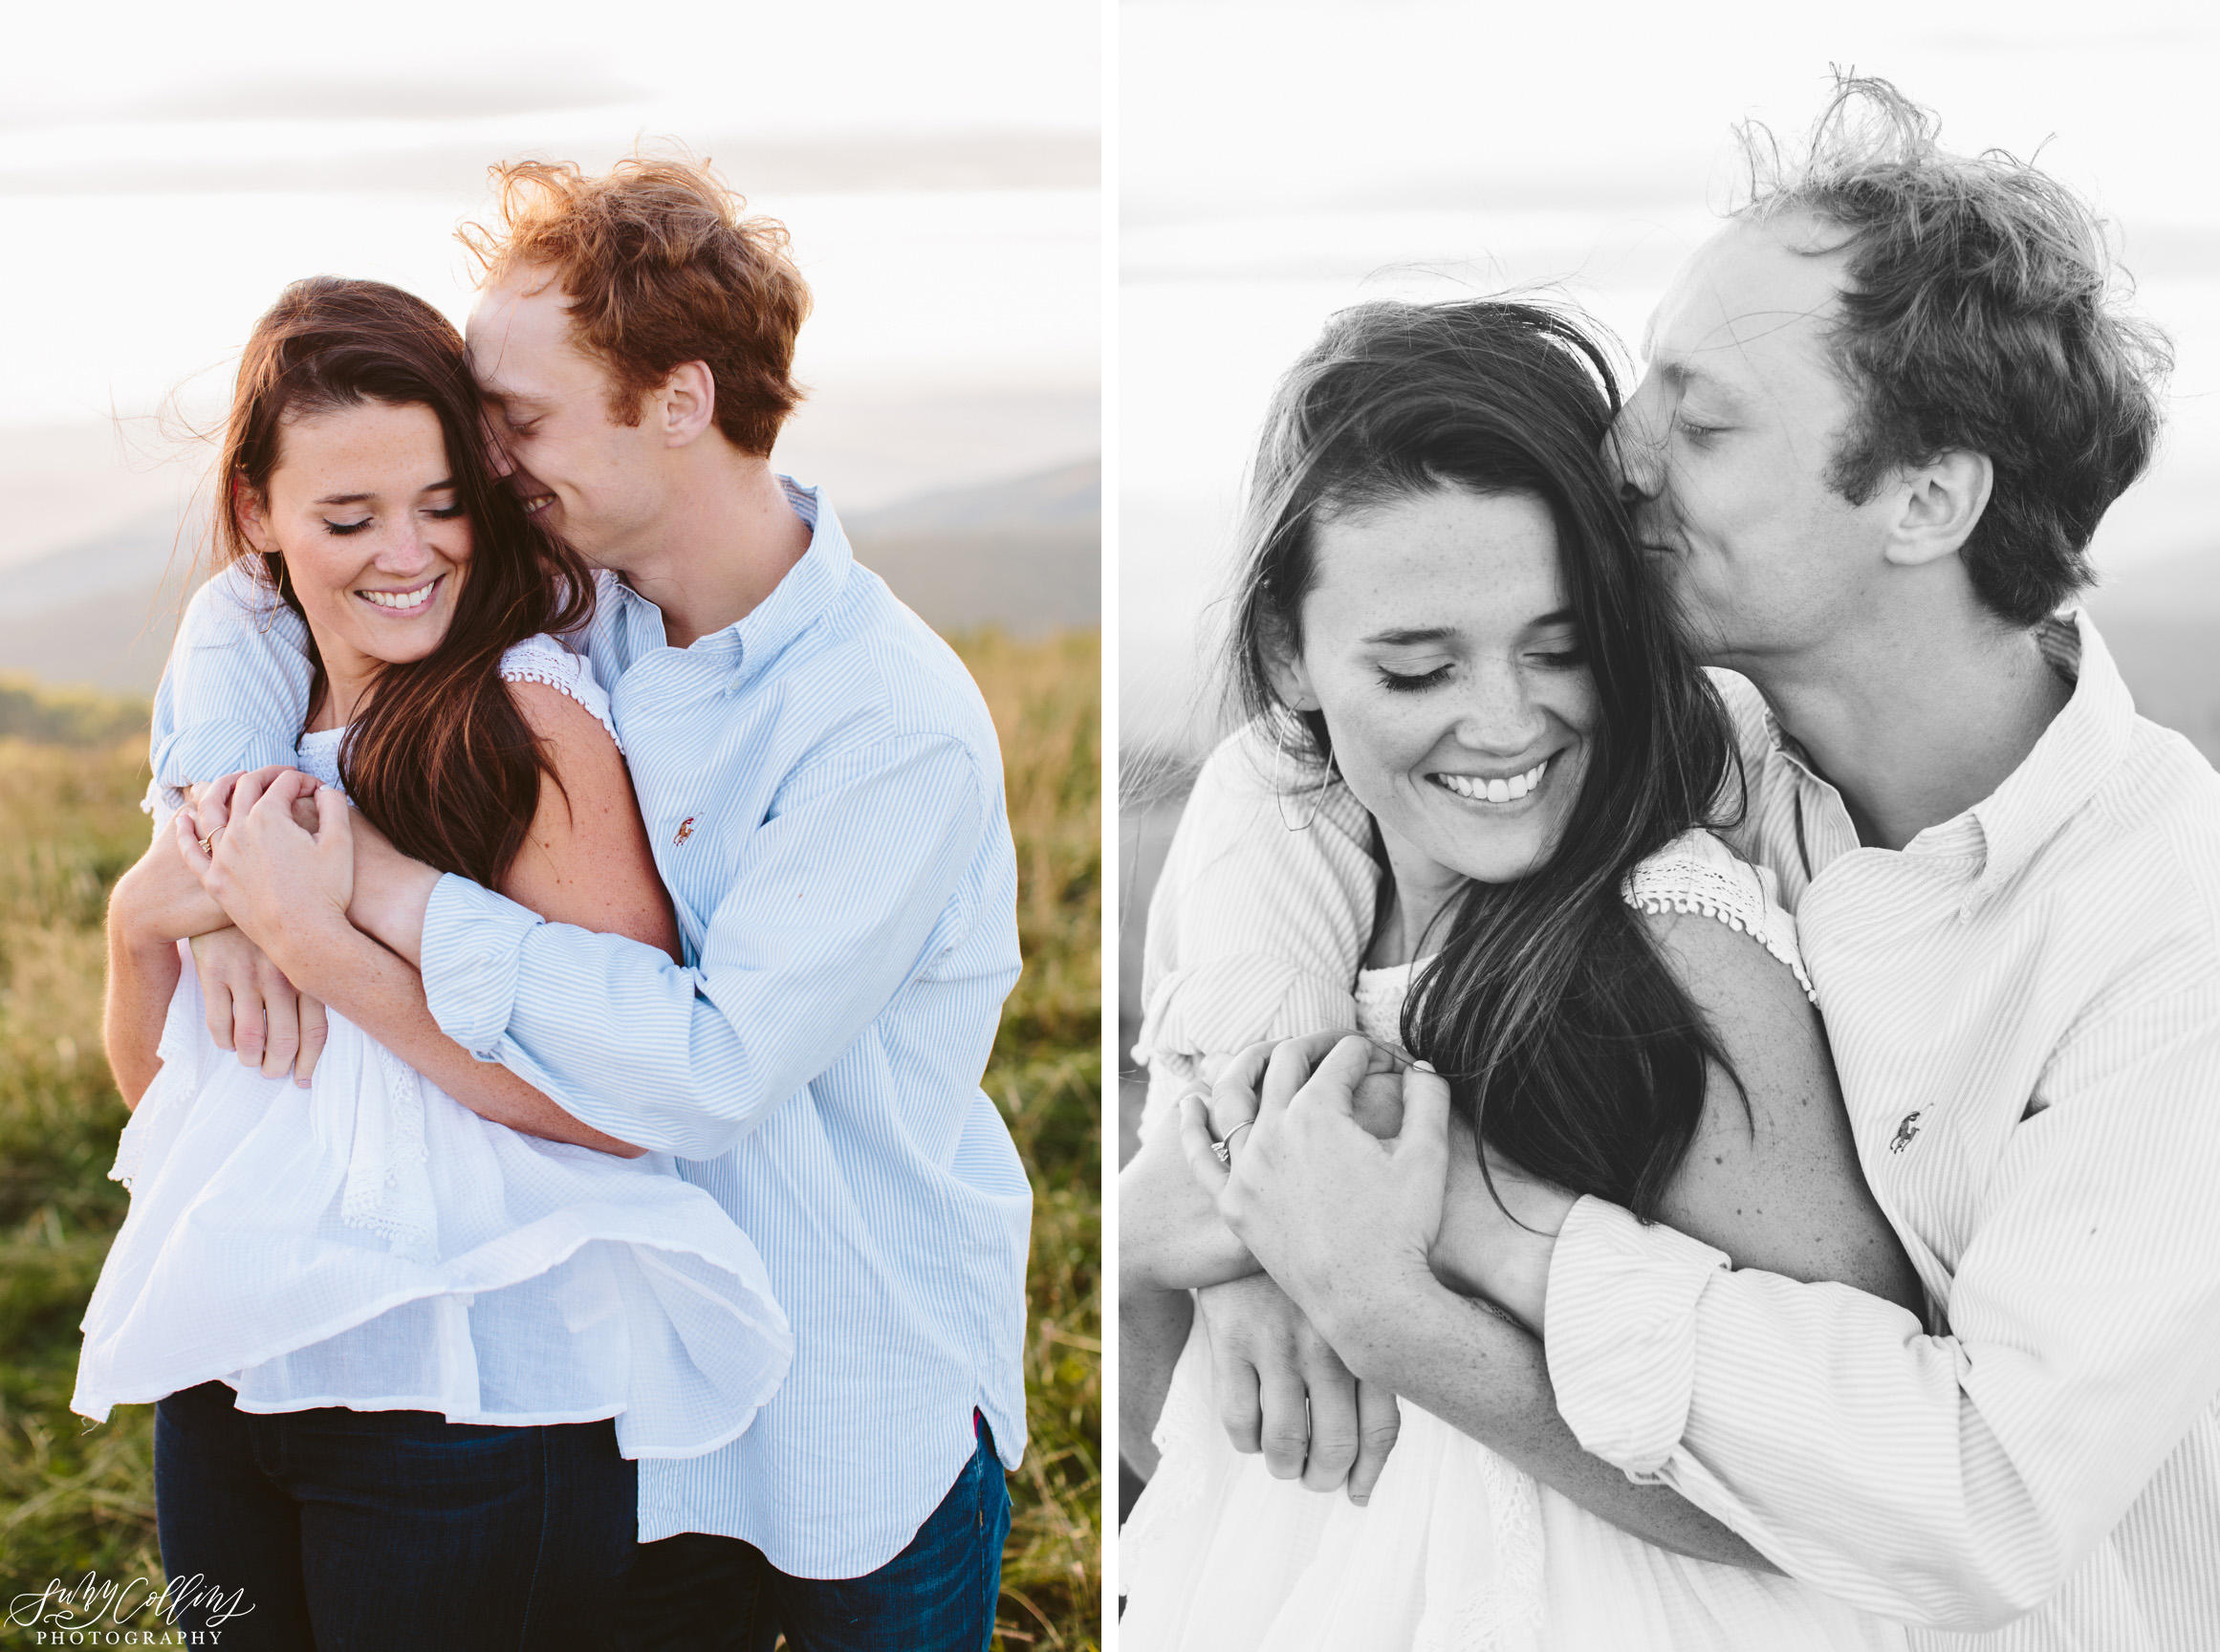 poses, couples, outdoor, max patch, Knoxville, Tennessee, engagement, sunset, evening, love, vibrant, colorful, bright, creative, romantic, natural, light and airy, natural light, passion, inspiration, intimate, outfits, fountain, woods, field, sunrise, windy, North Carolina, black and white